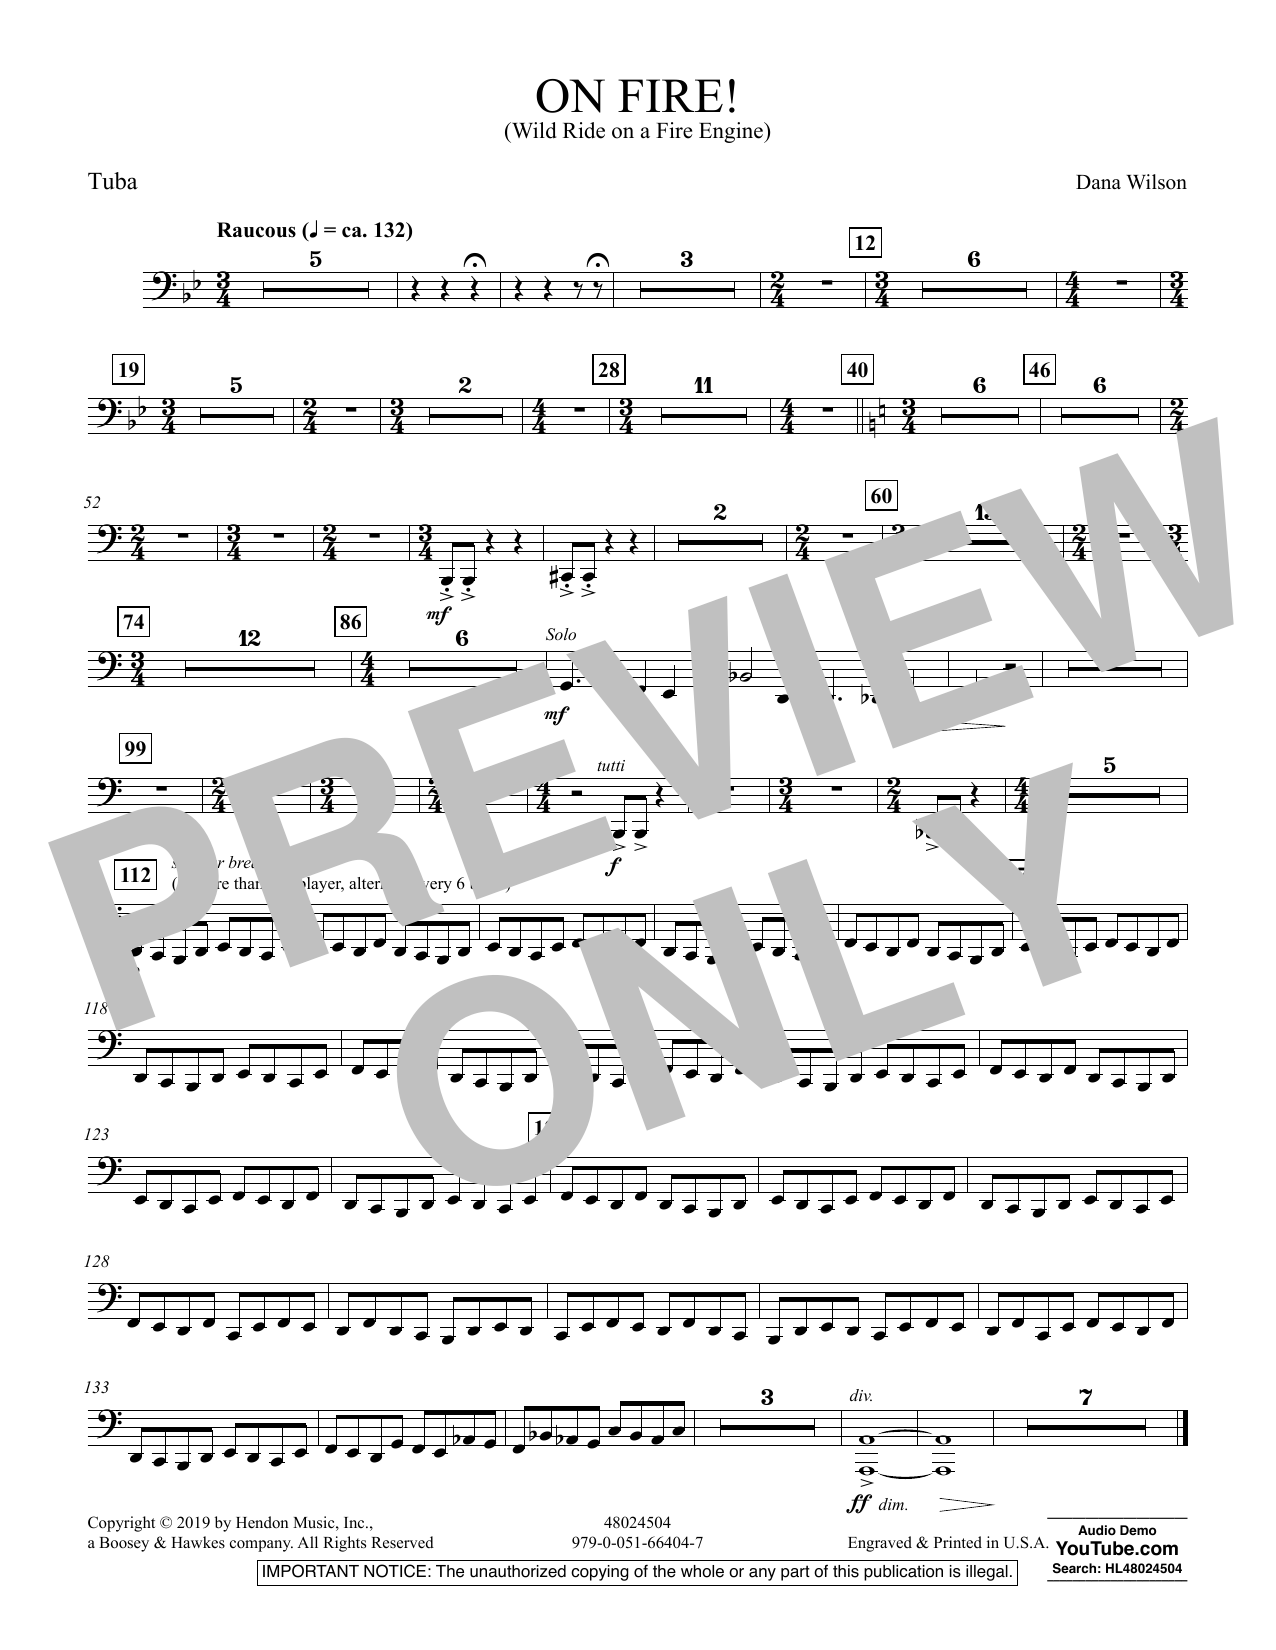 On Fire! (Wild Ride on a Fire Engine) - Tuba (Concert Band)